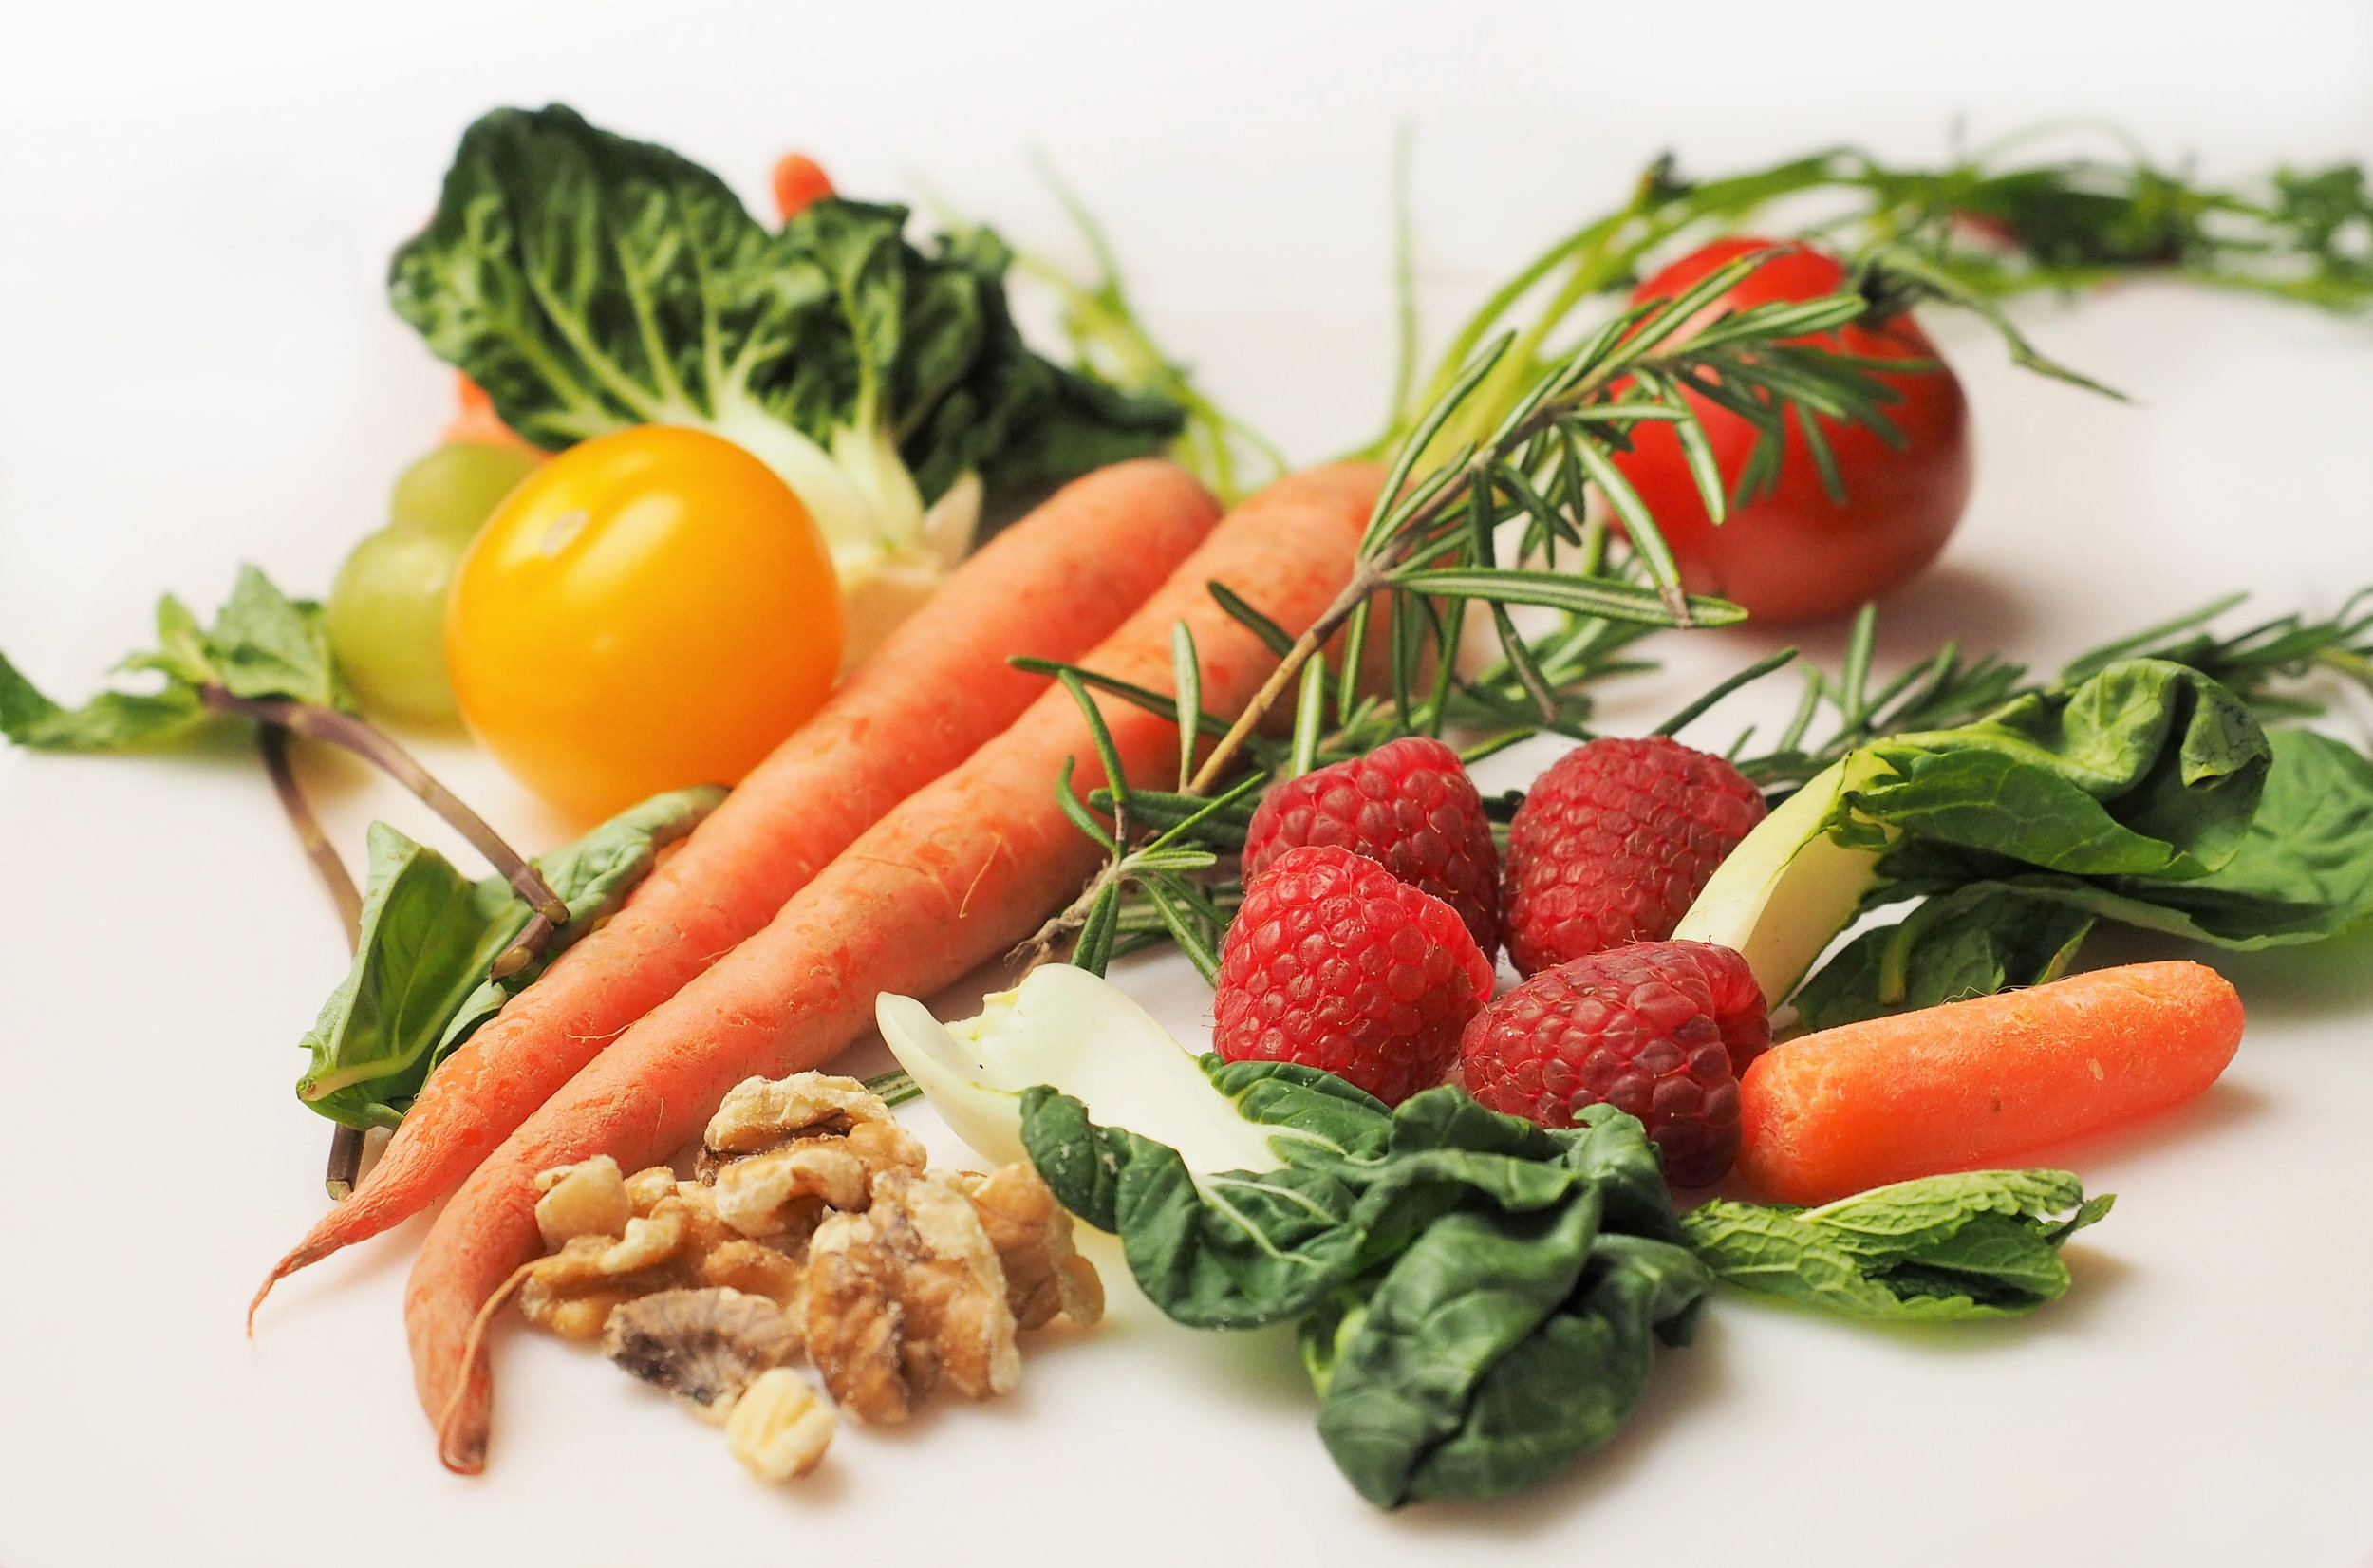 Canva - Carrots Tomatoes Vegetables and Other Fruits.jpg